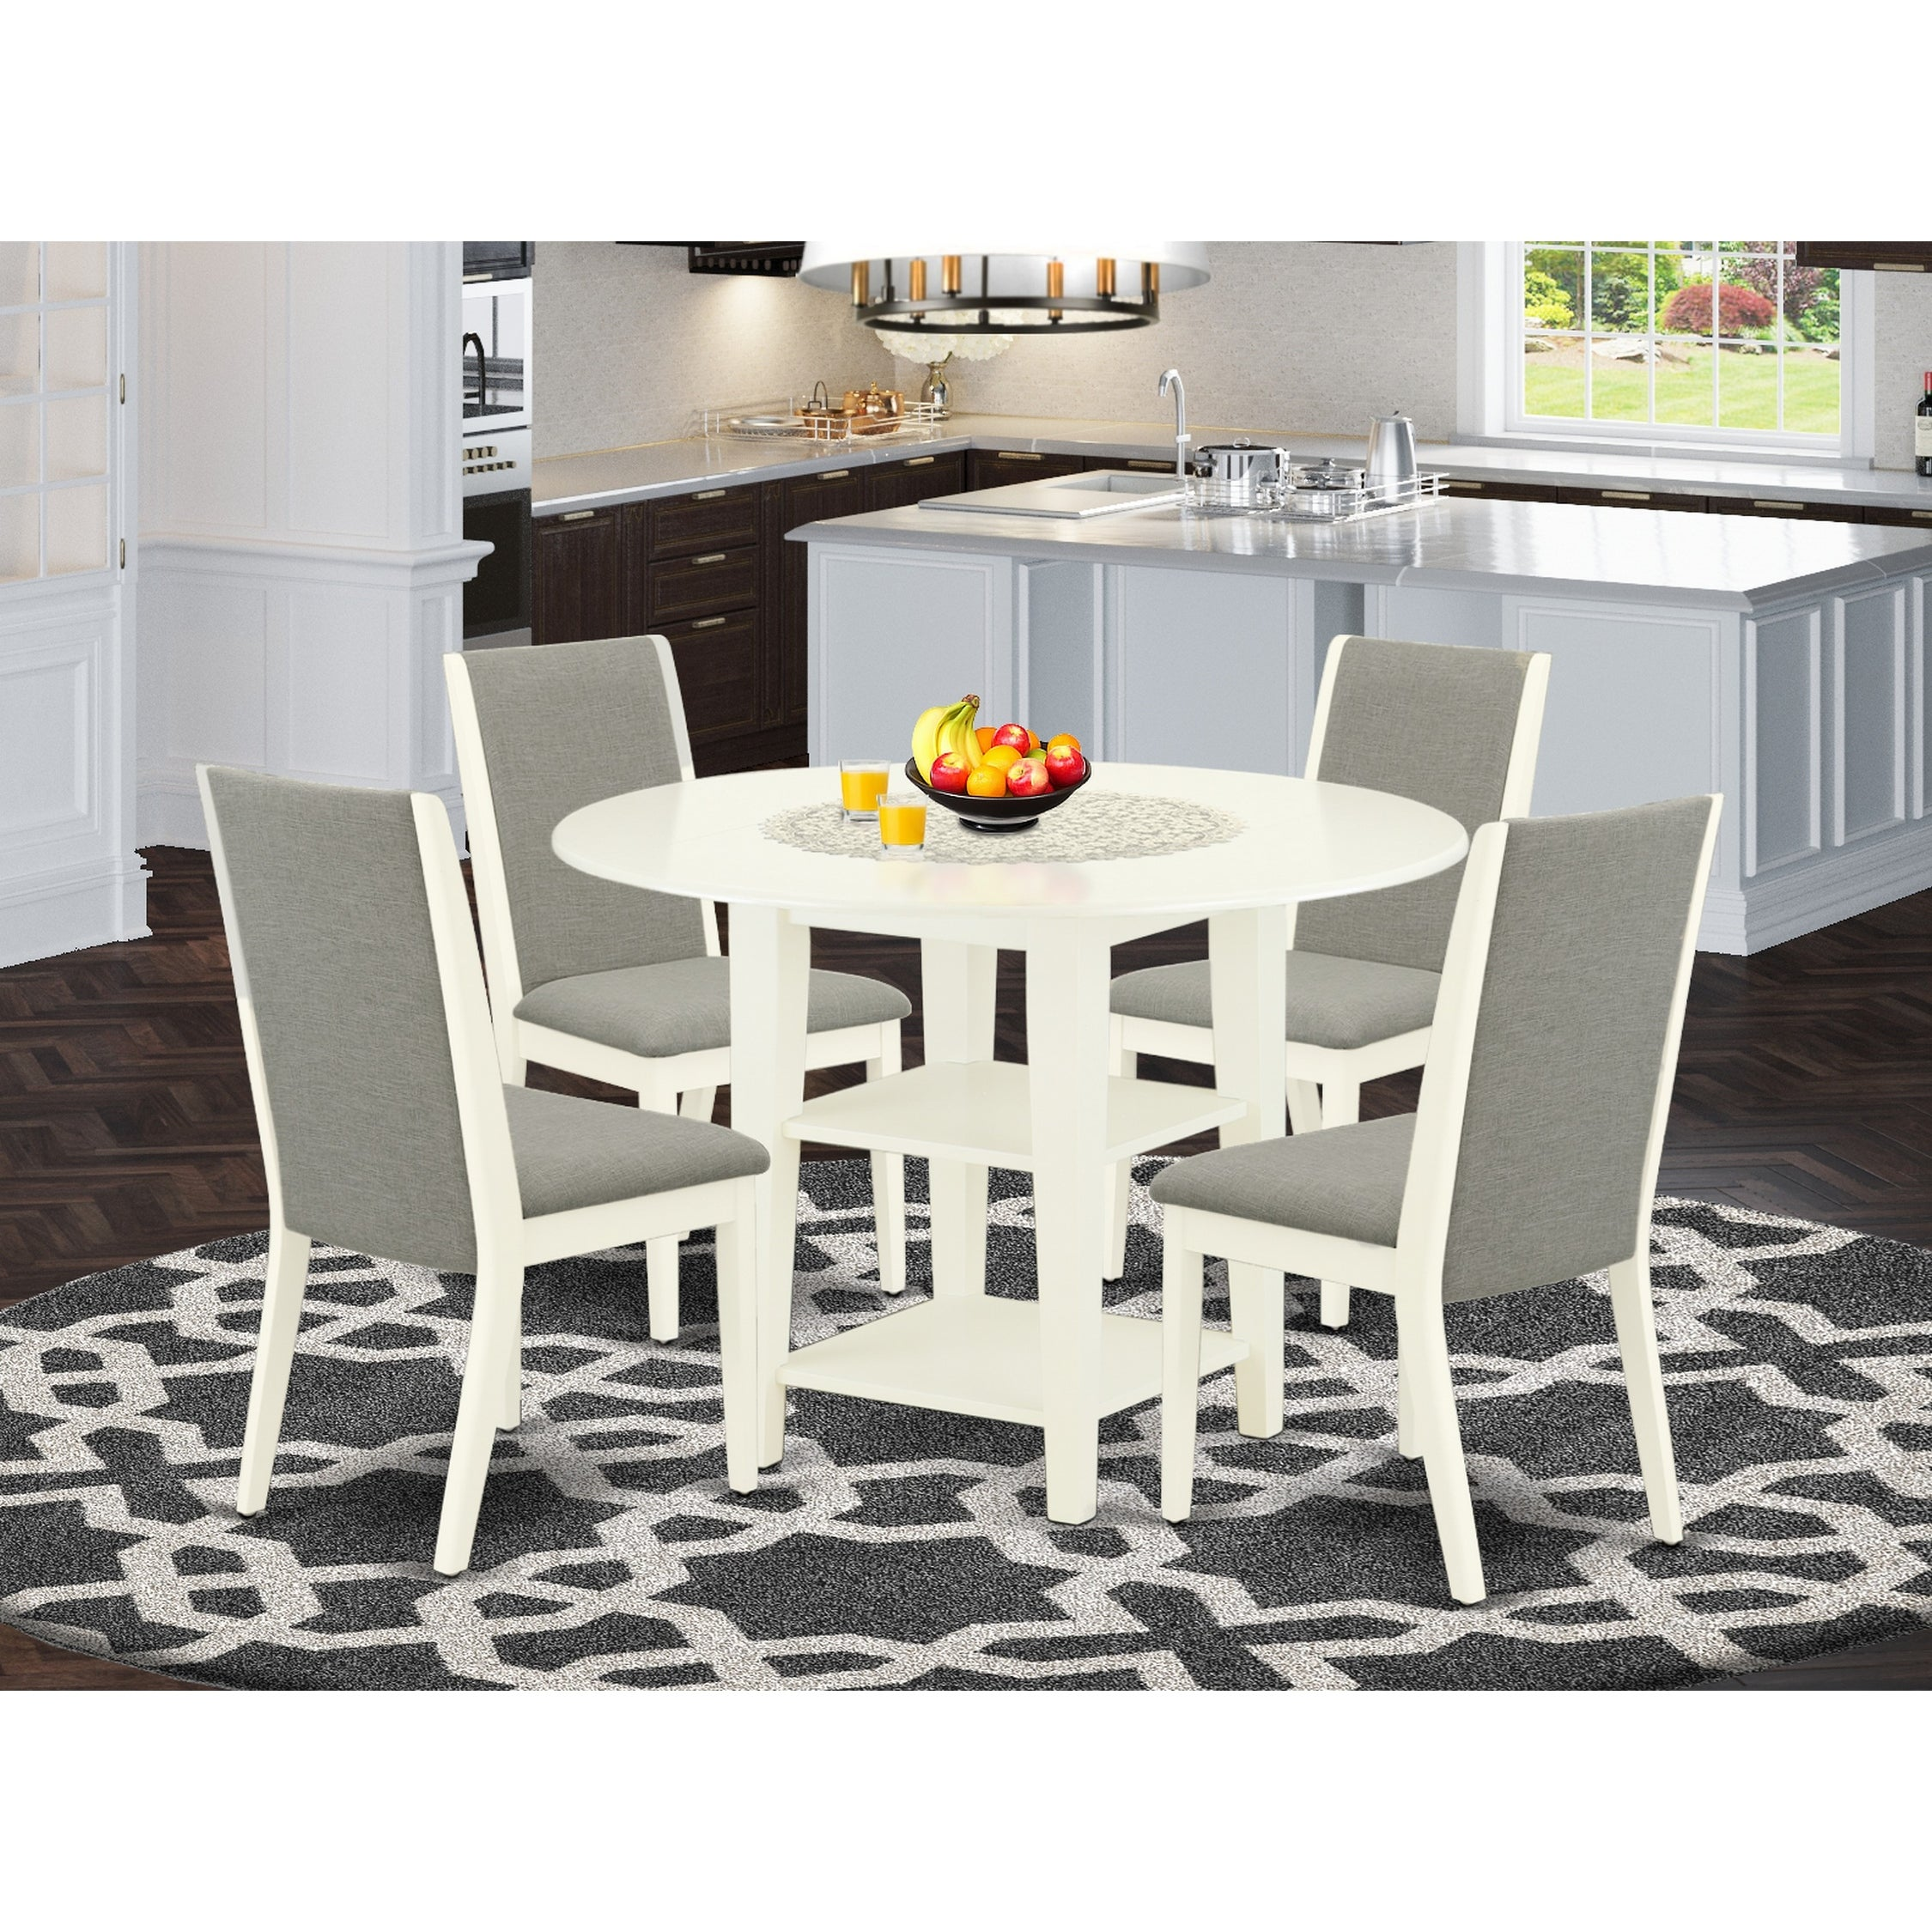 Ansley Hosho 5 Pieces Dining Room Table And 4 Blue Velvet Chairs Set Wood Marble Like Kitchen Table With 4 Occasional Velvet Chairs Black Metal Legs For Small Dinette Apartment Space Saving Dining Room